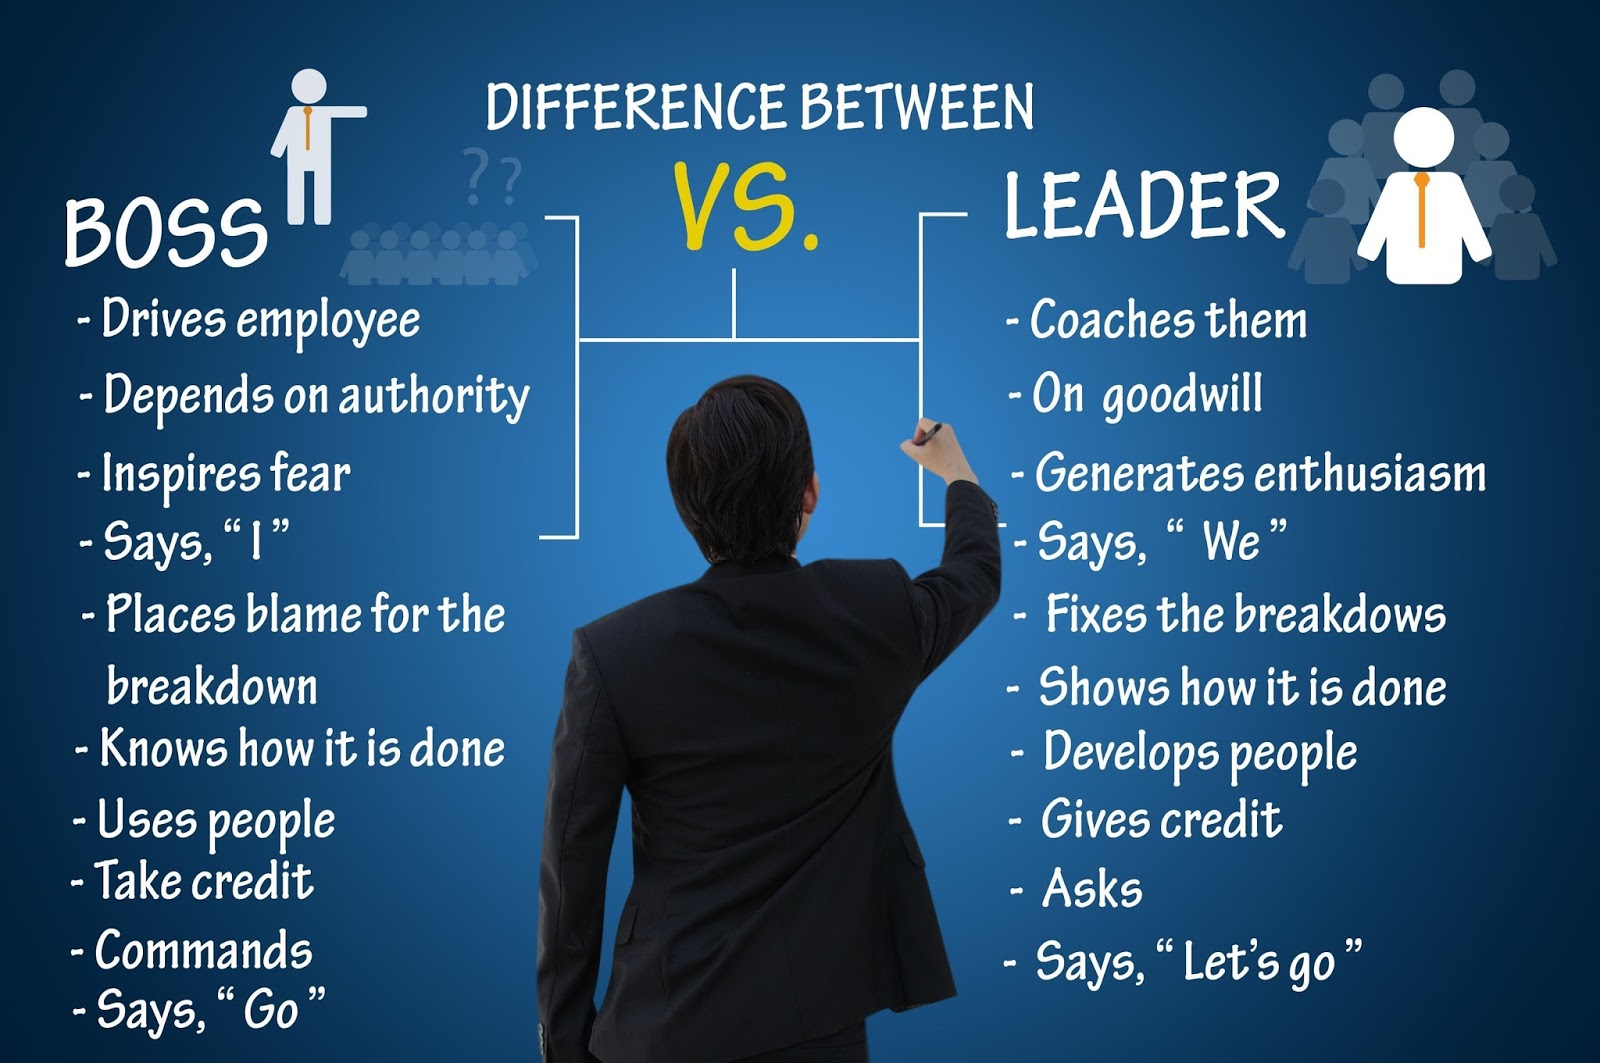 a comparison between a good and a bad boss